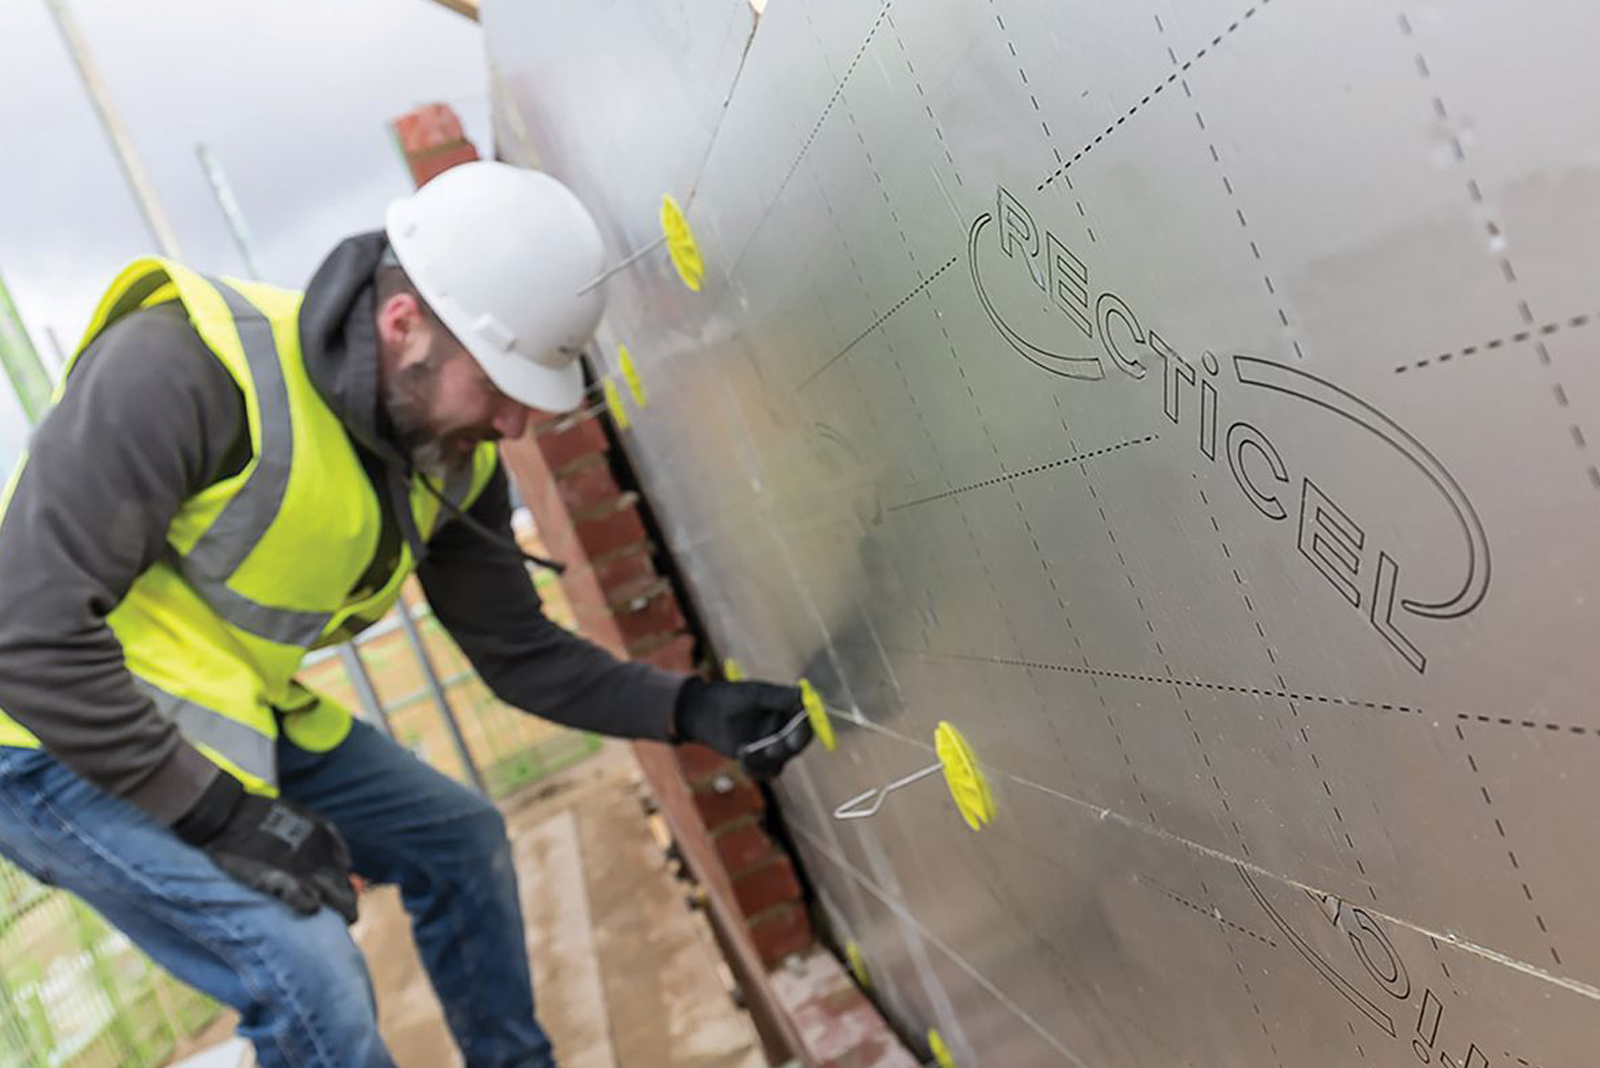 Building boards, plasters and adhesive products – June 2021